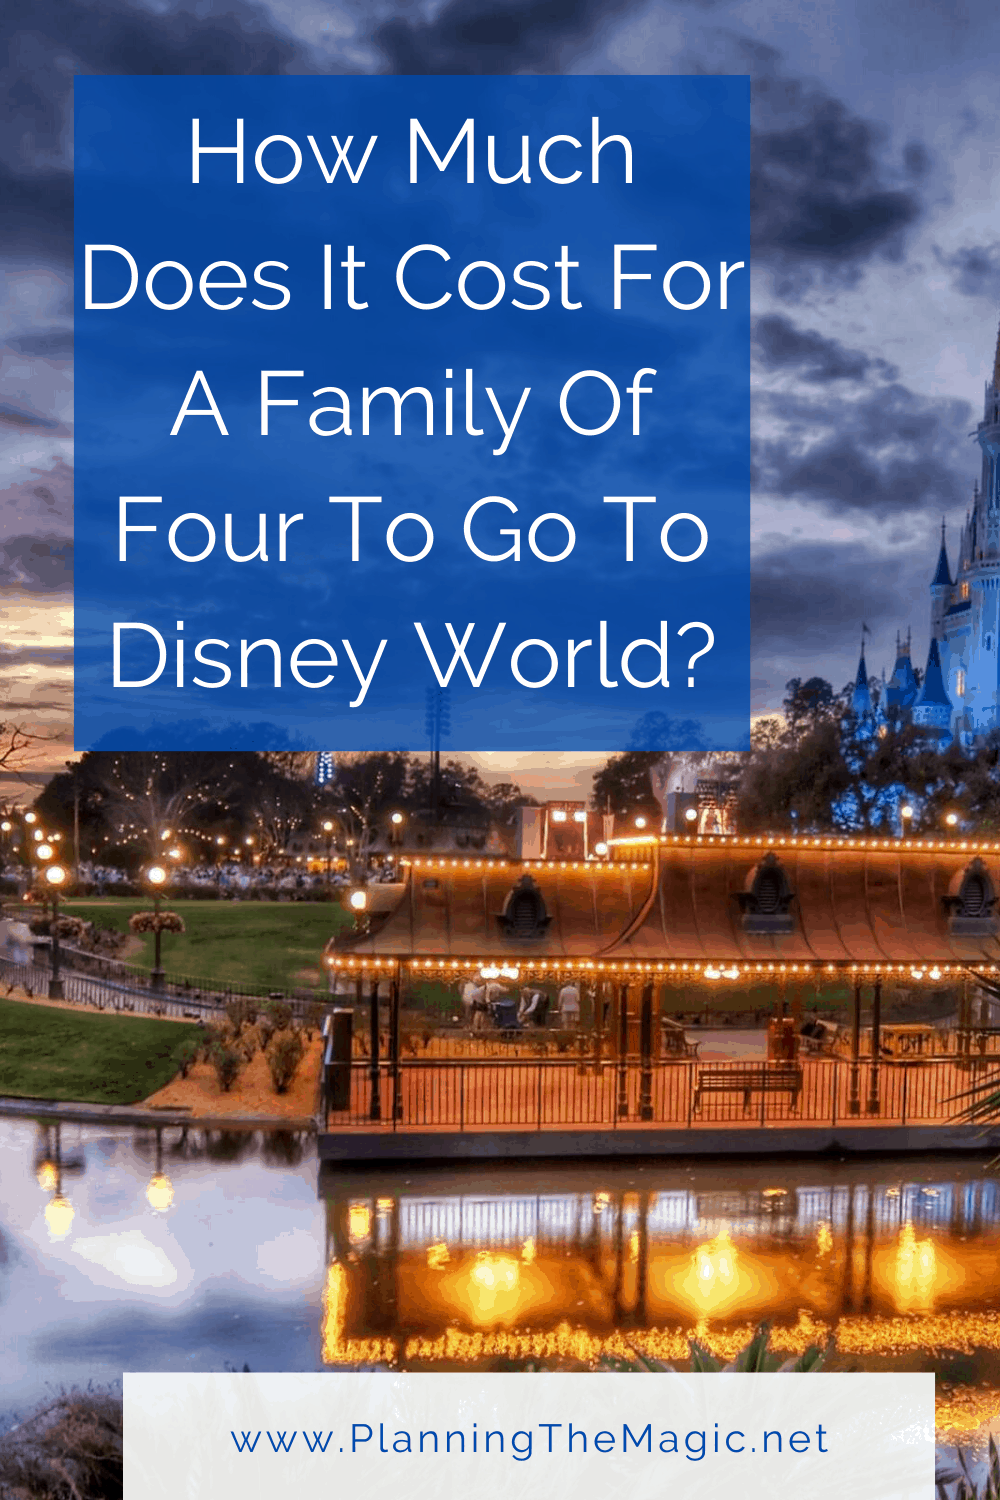 How much does it cost for a family of 4 to go to Disney World